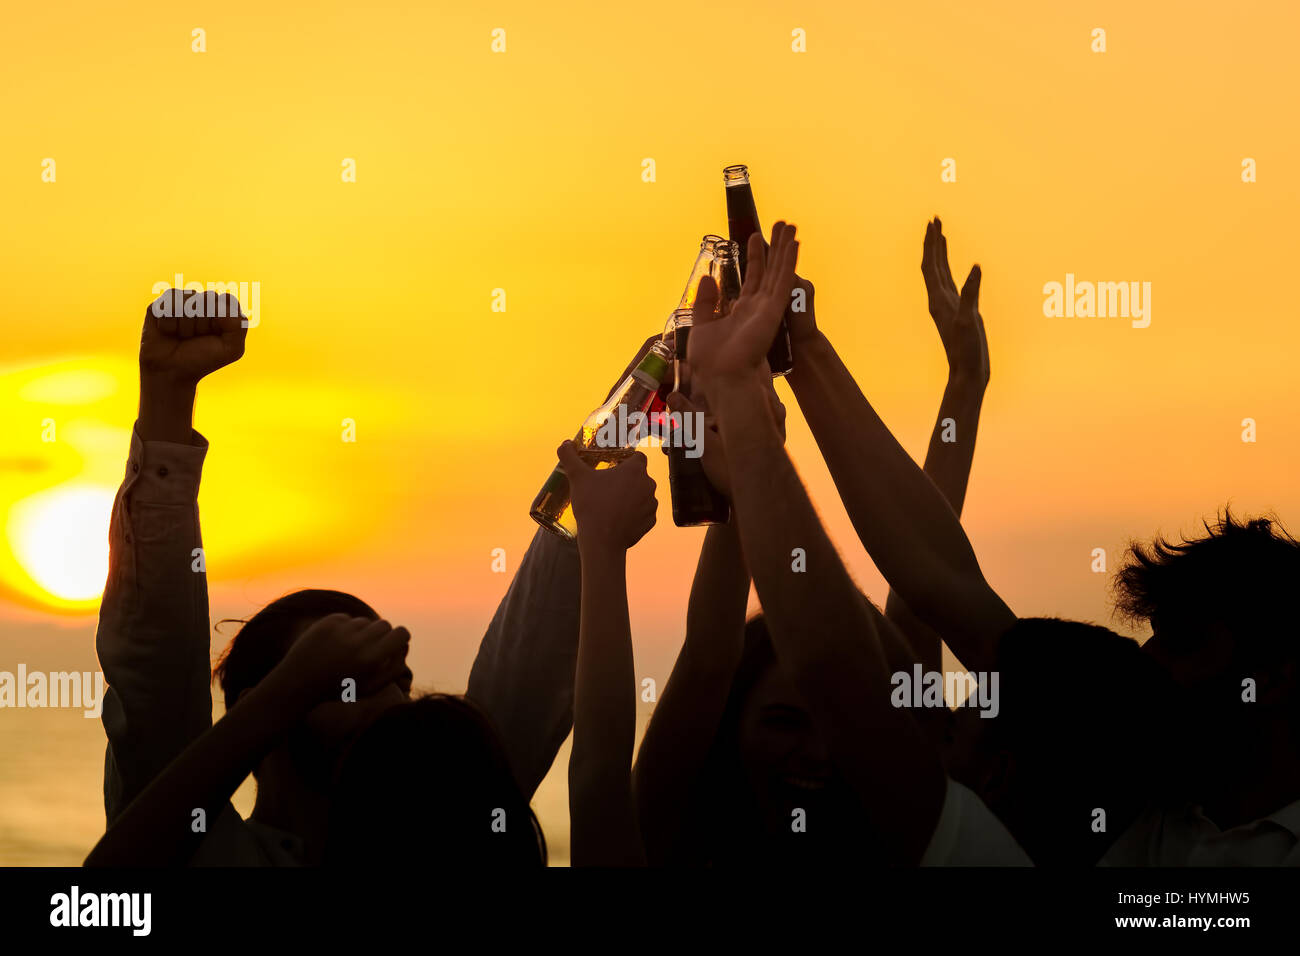 Friends Beach Party Drinks Toast Celebration Concept - Stock Image